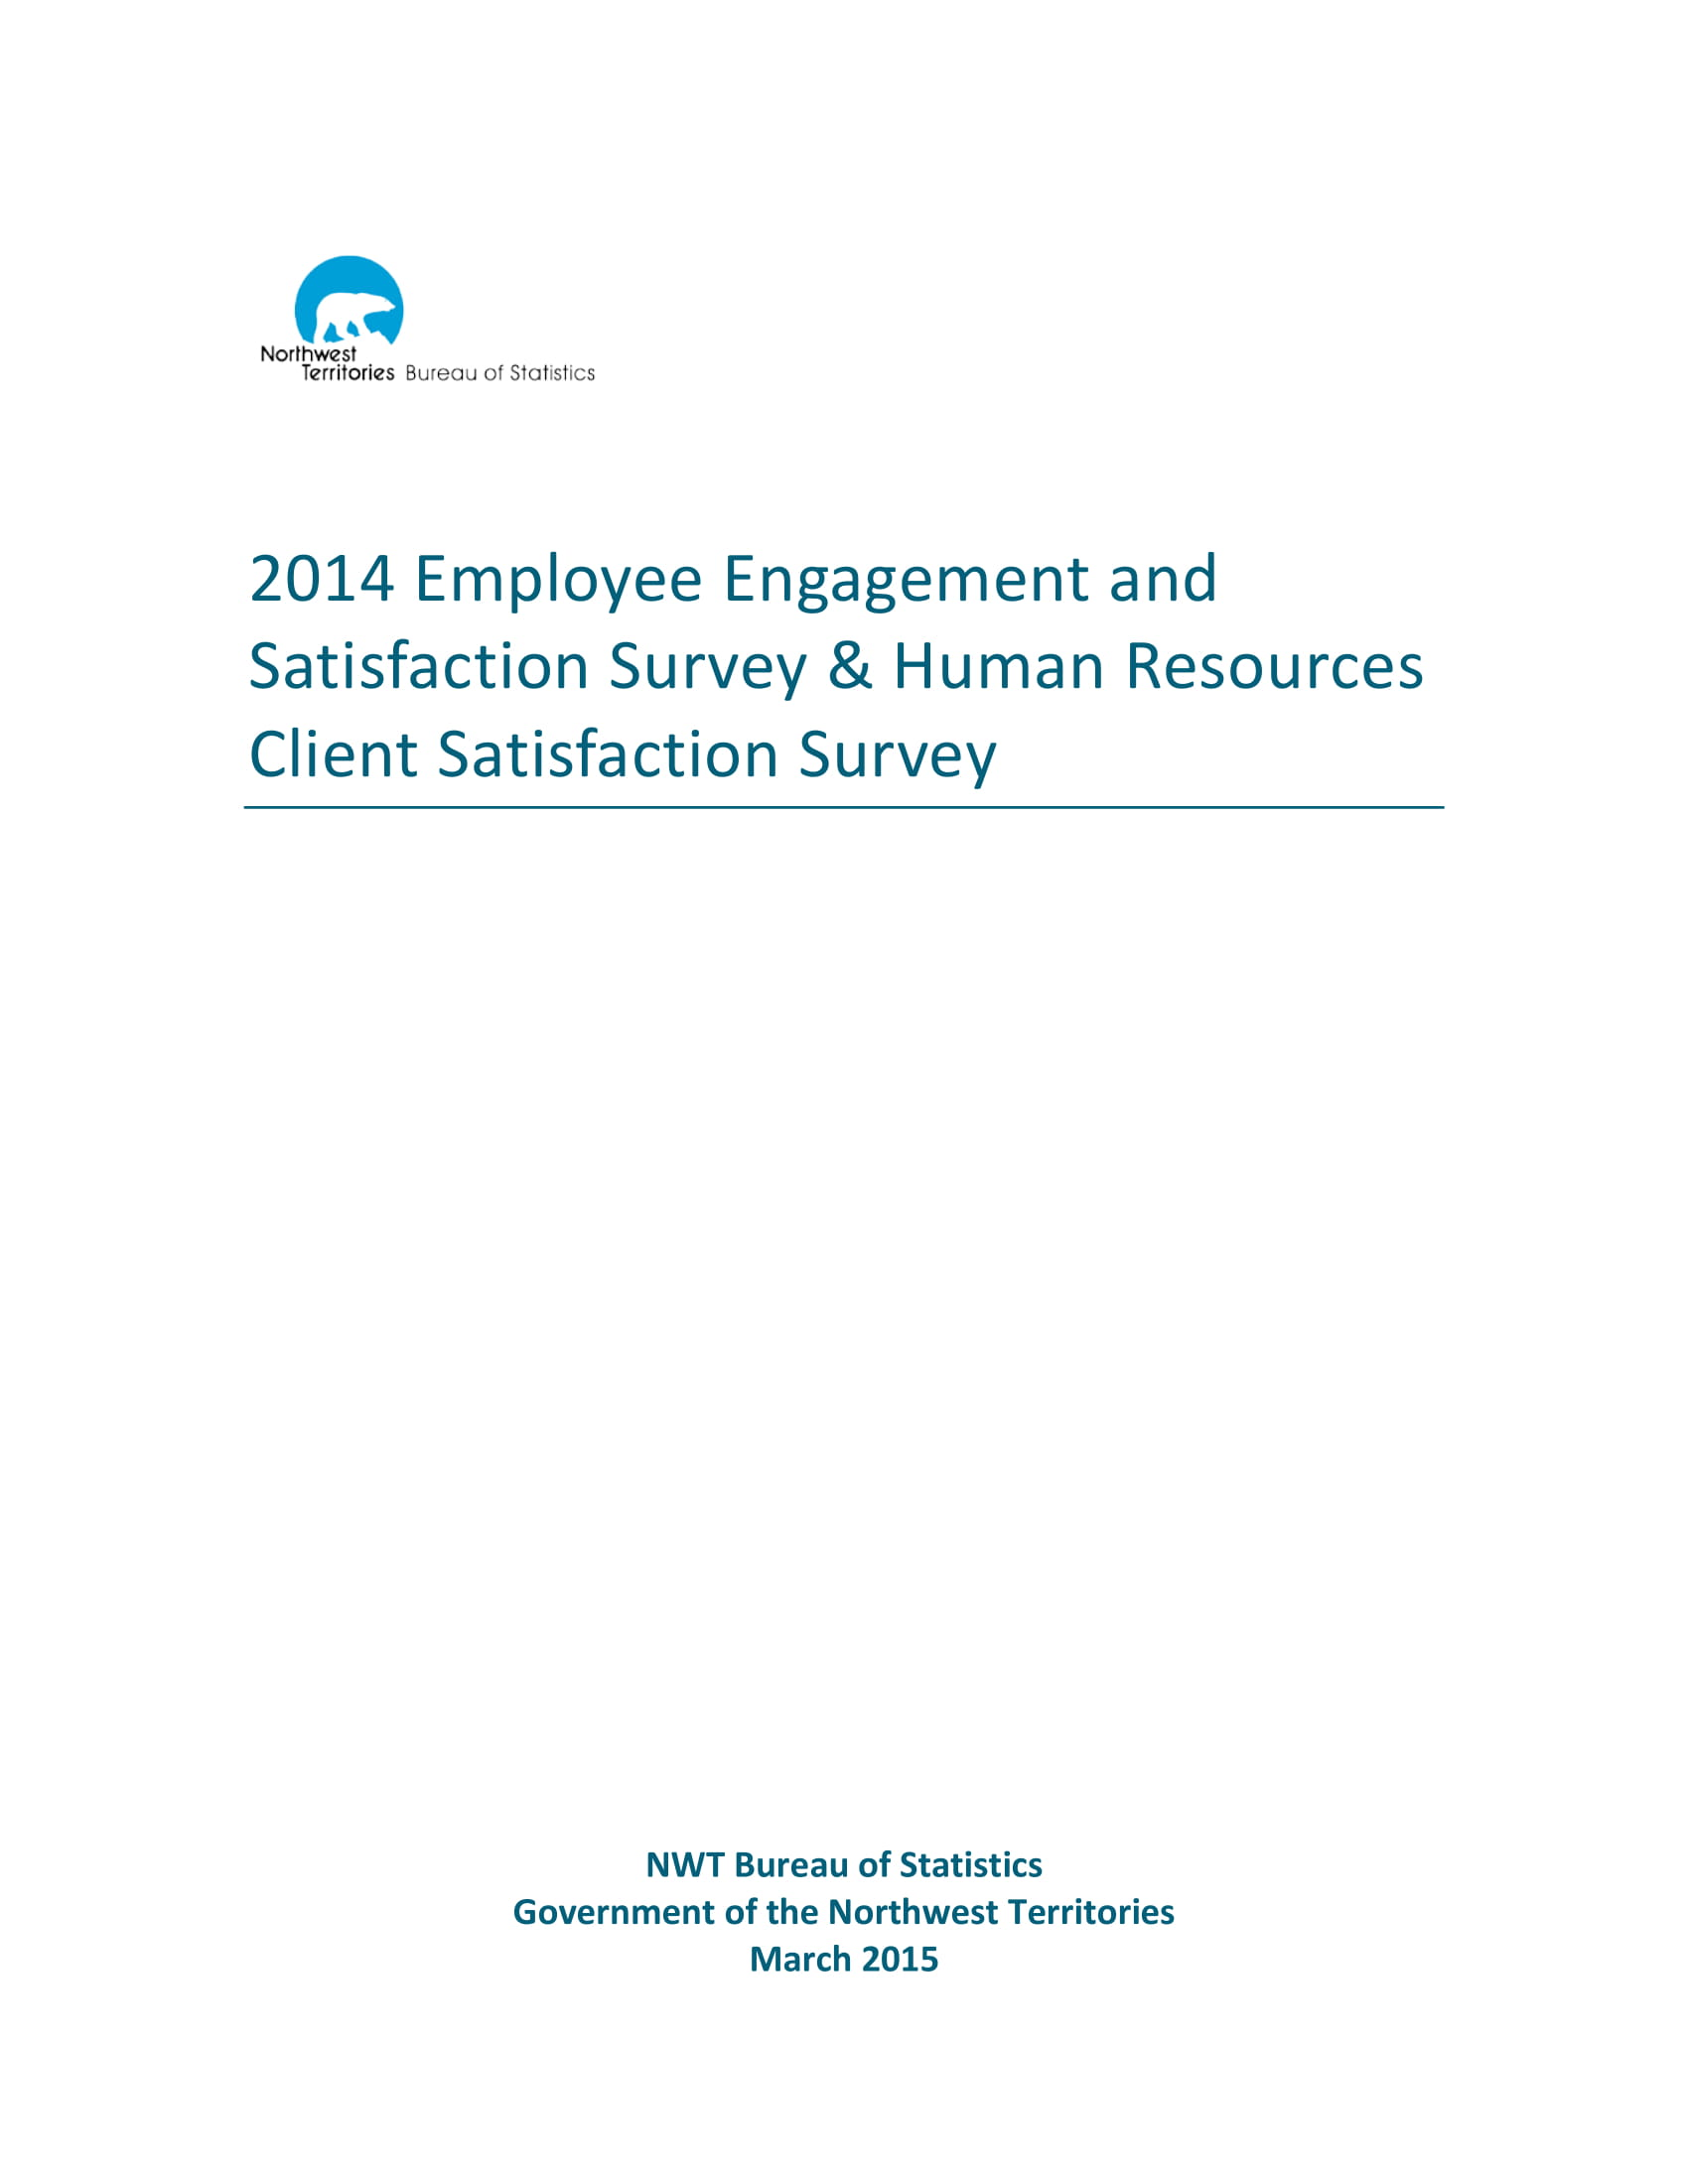 employee engagement and satisfaction survey form example